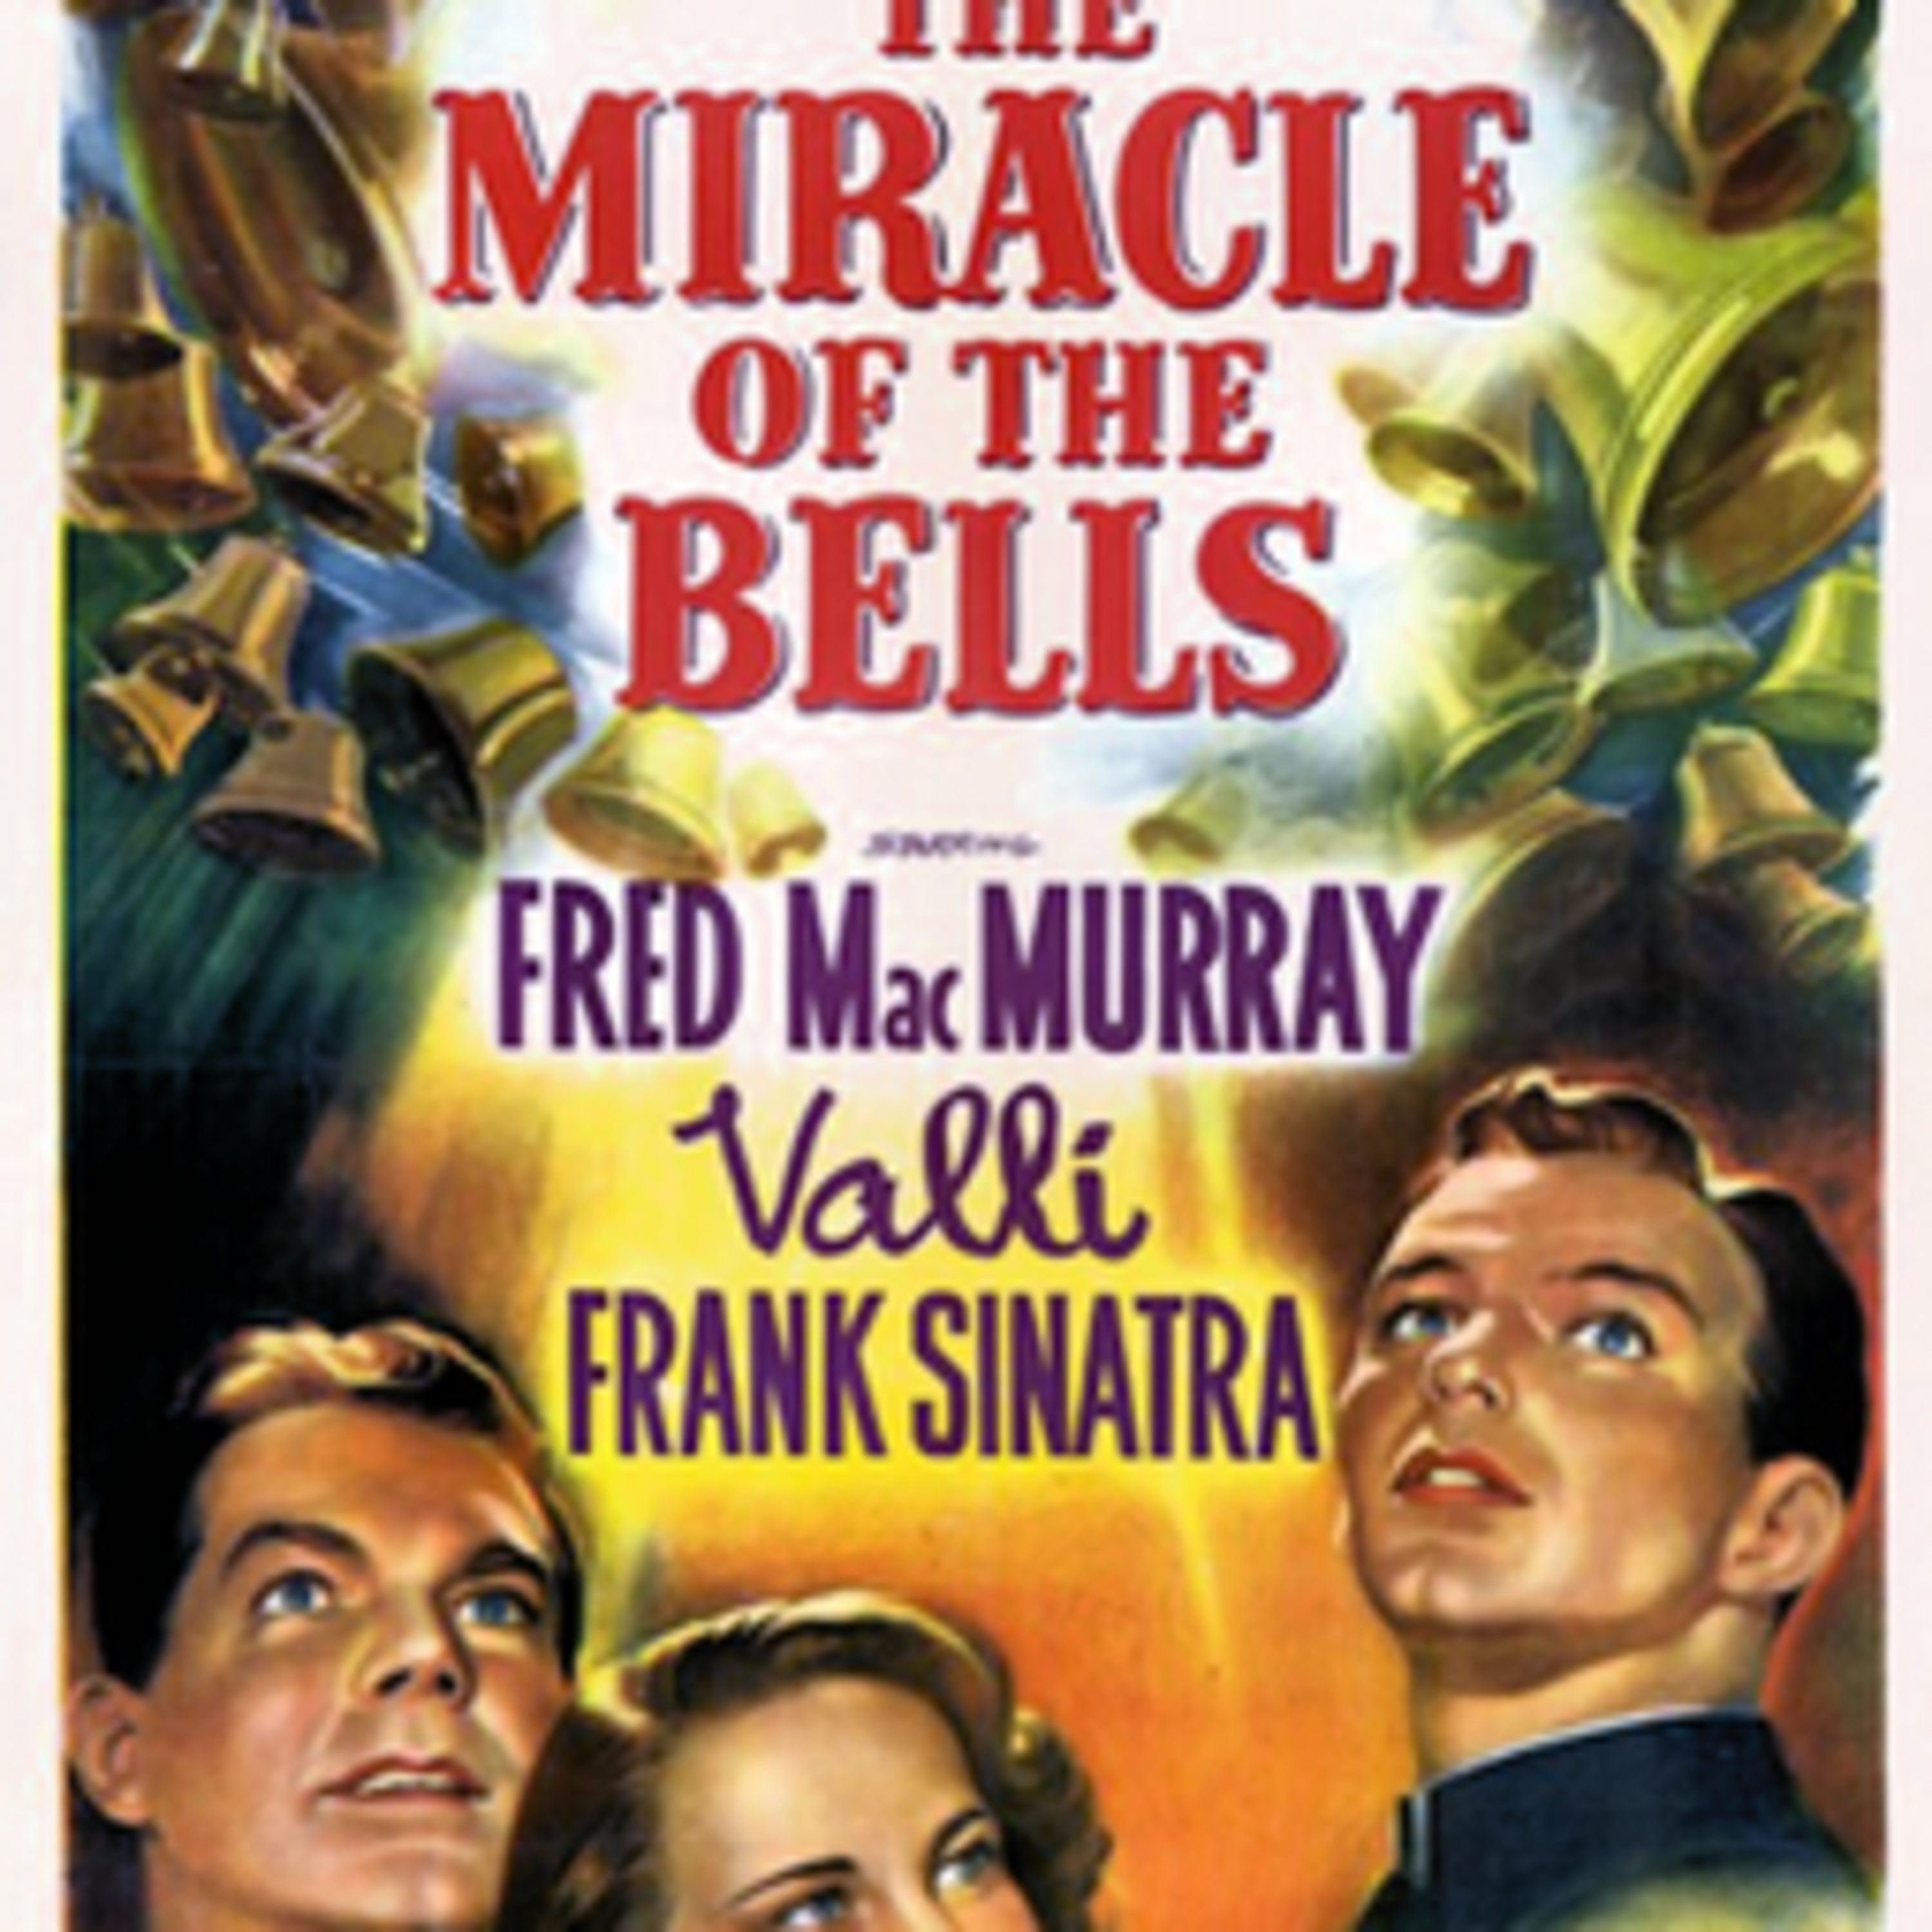 The Miracle of the Bells - Frank Sinatra - Fred MacMurray - Valli - All-Star Radio Dramas of Classic Films - Lux Radio Theater